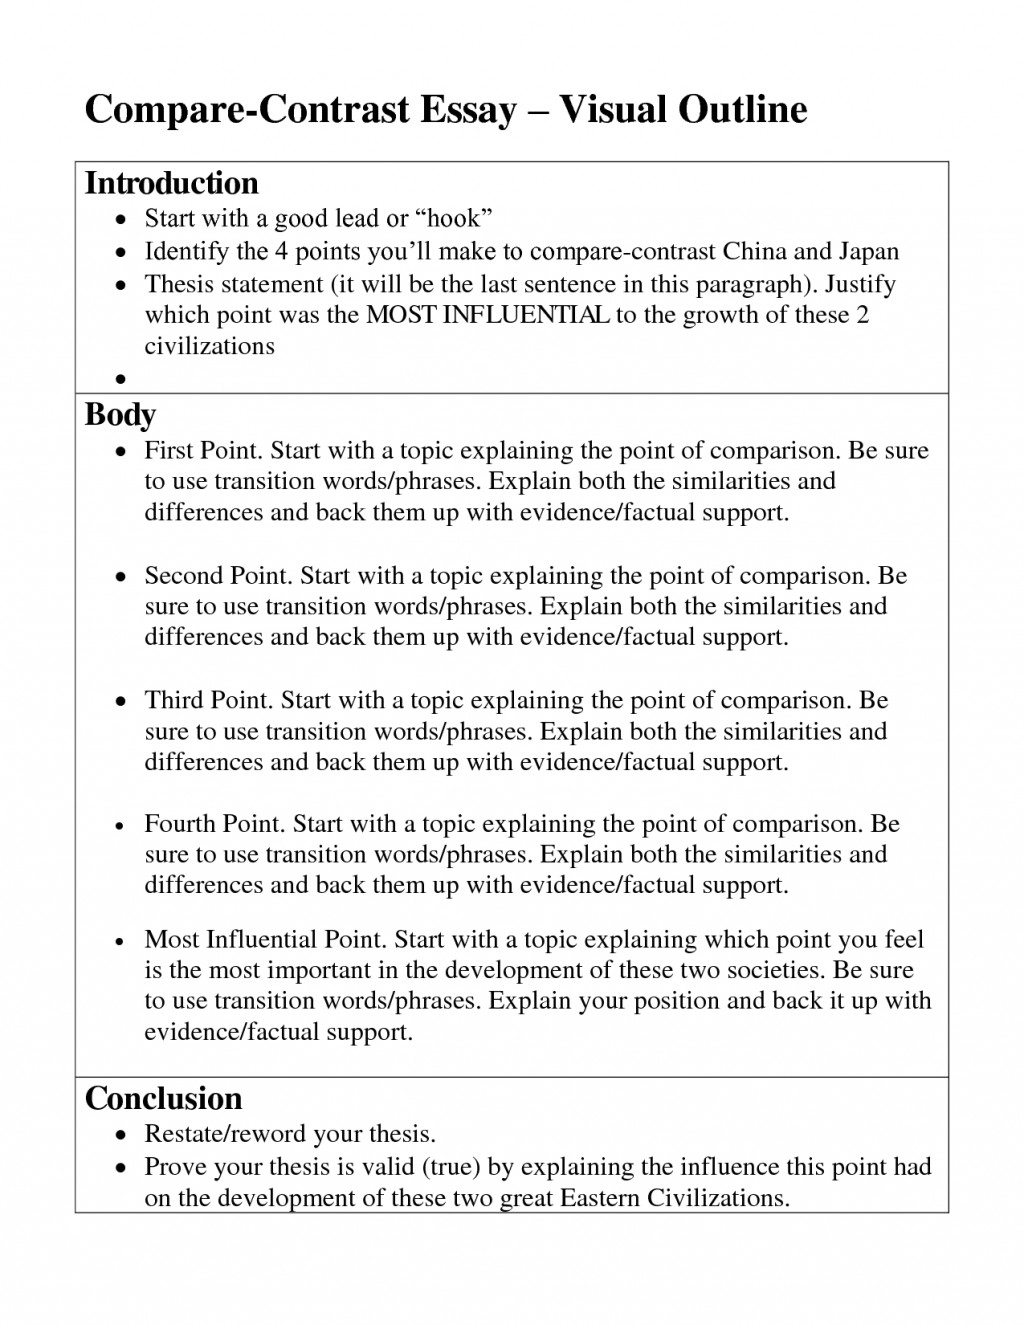 017 Compare And Contrast Essay Frightening Outline Block Method Ideas High School Template For Middle Large